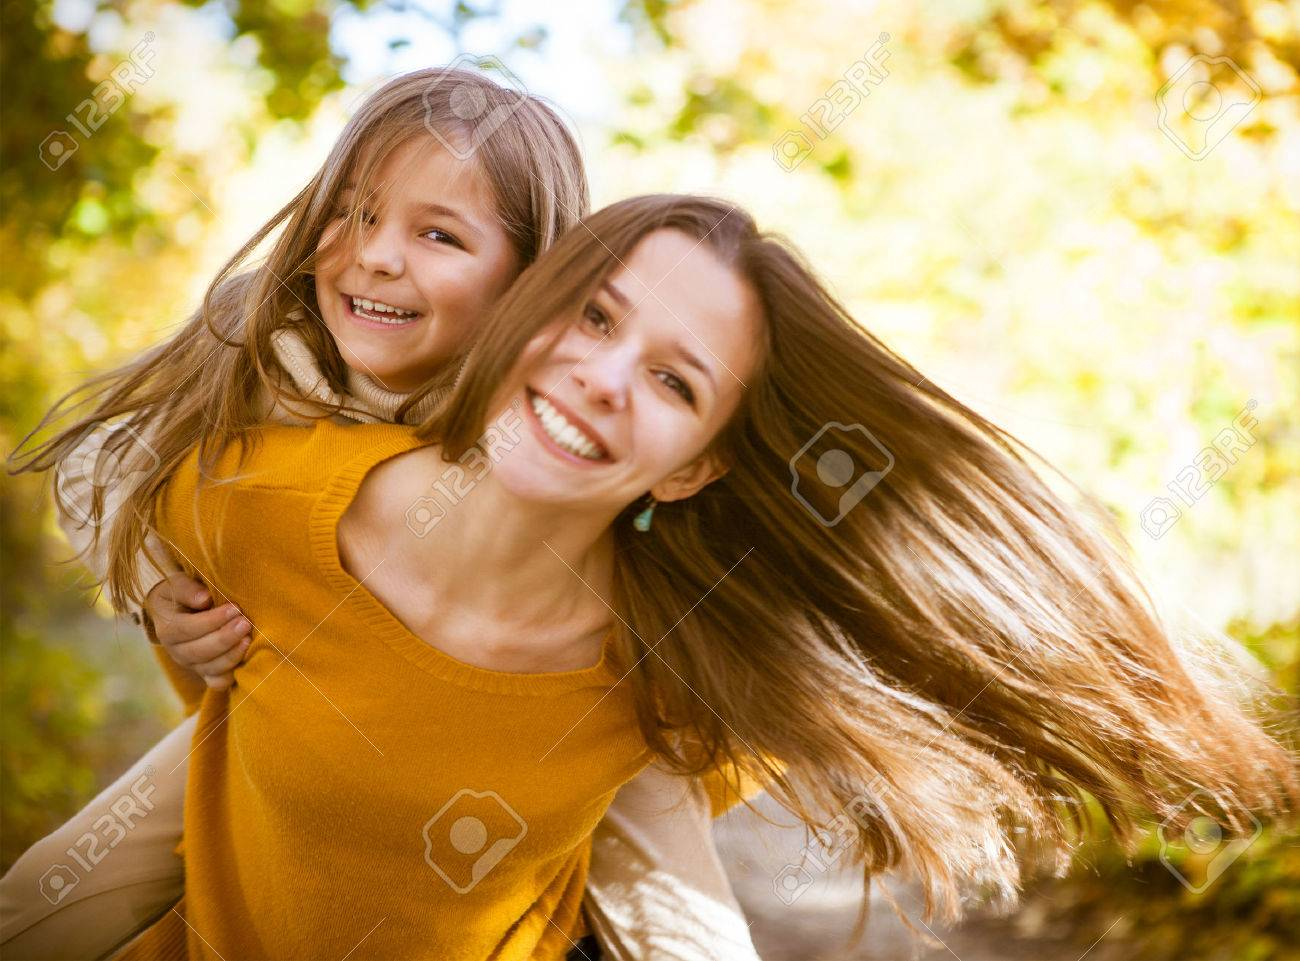 Two cheerful sisters playing in the park in warm autumn day - 44363268